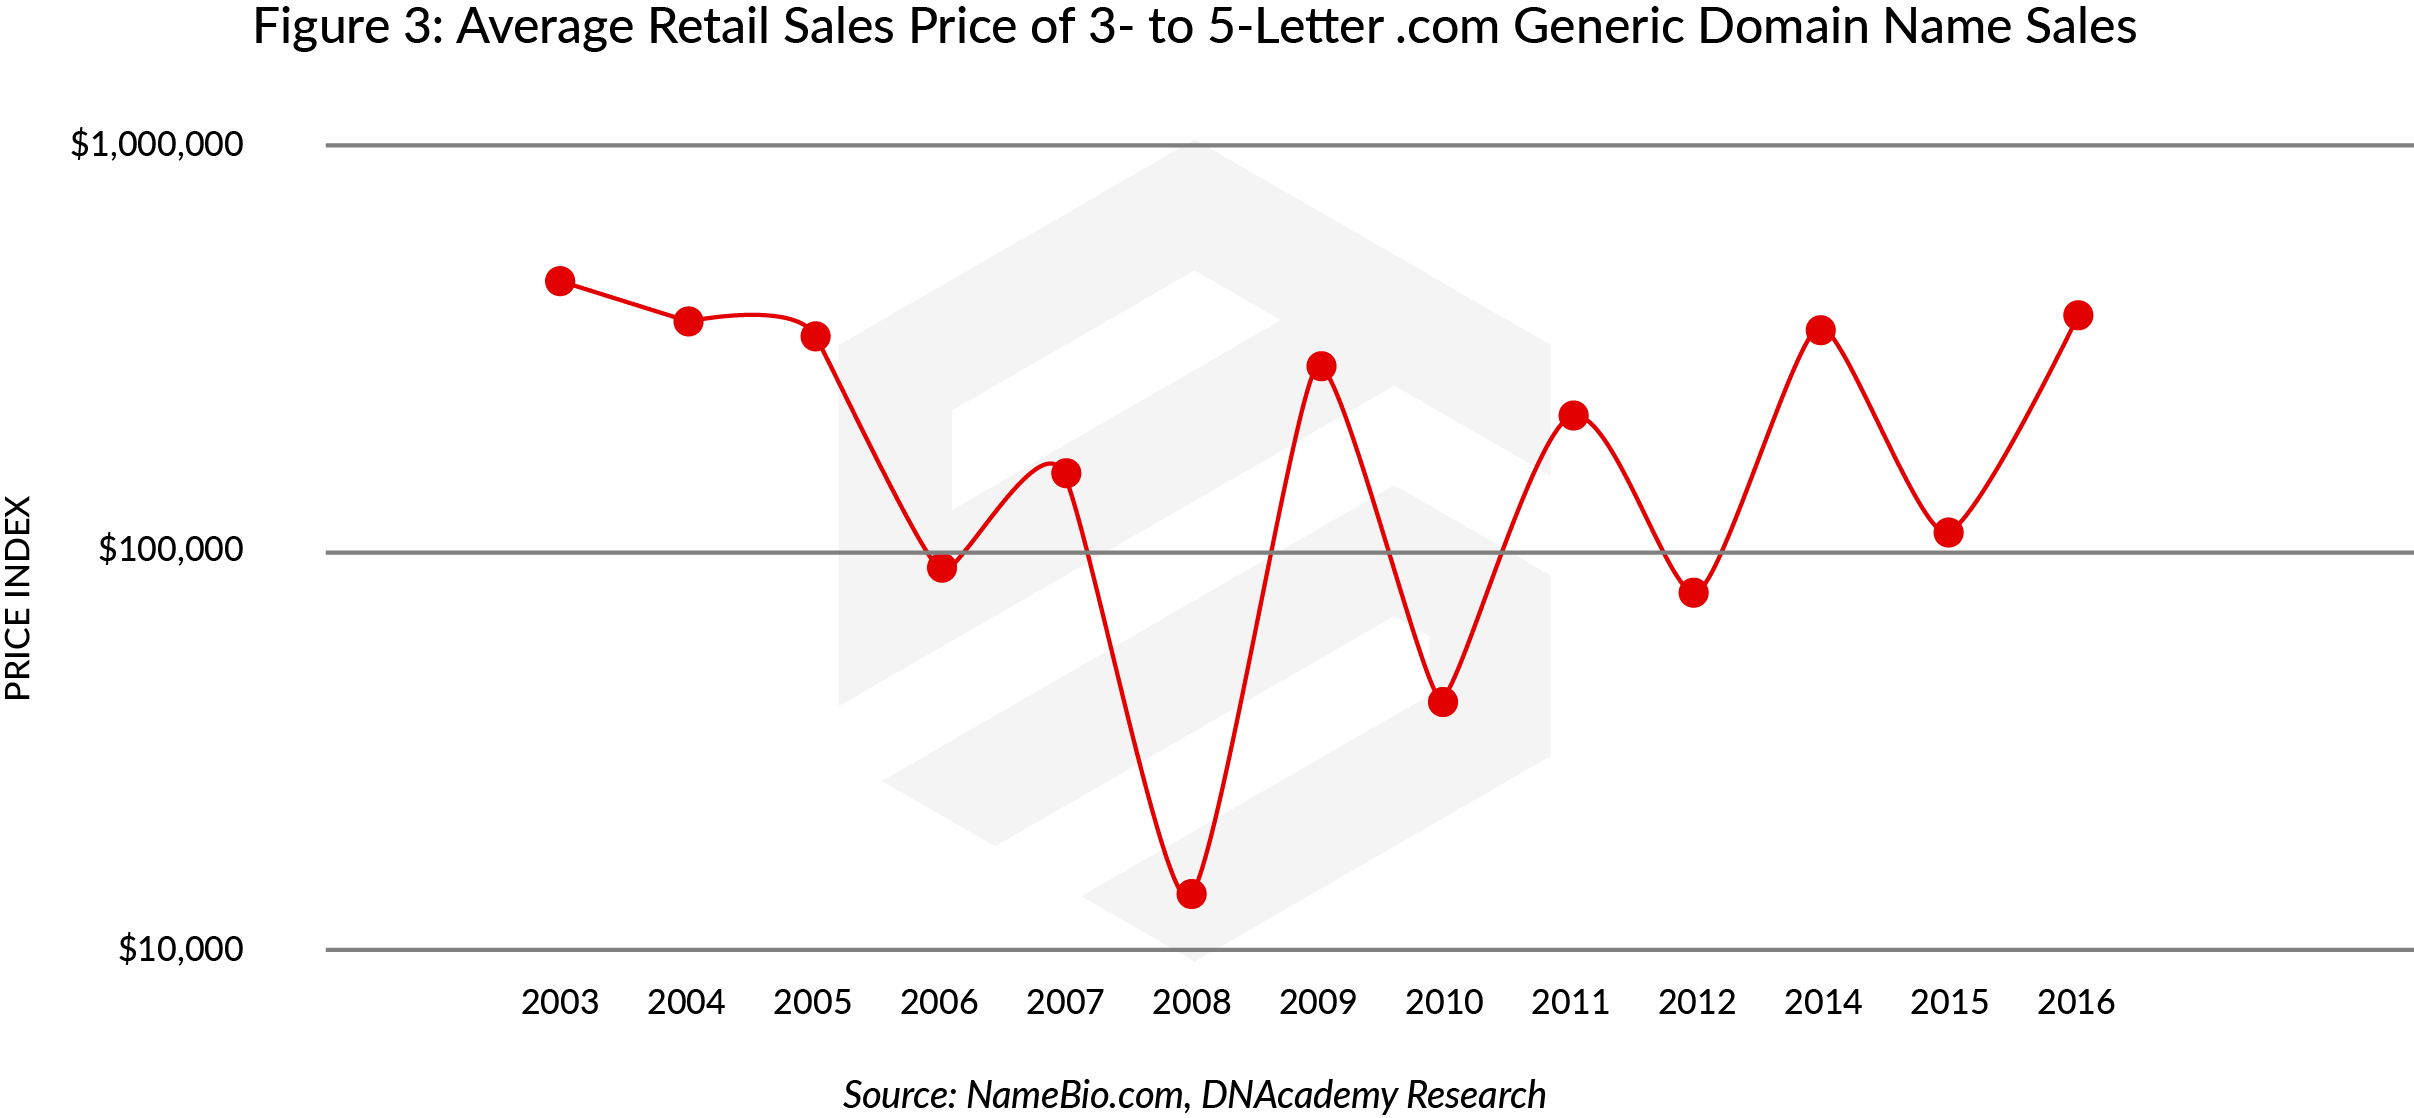 How Much is a Domain Name Worth: Average Retail Sales Price of 3- to 5-Letter Domain Name Sales